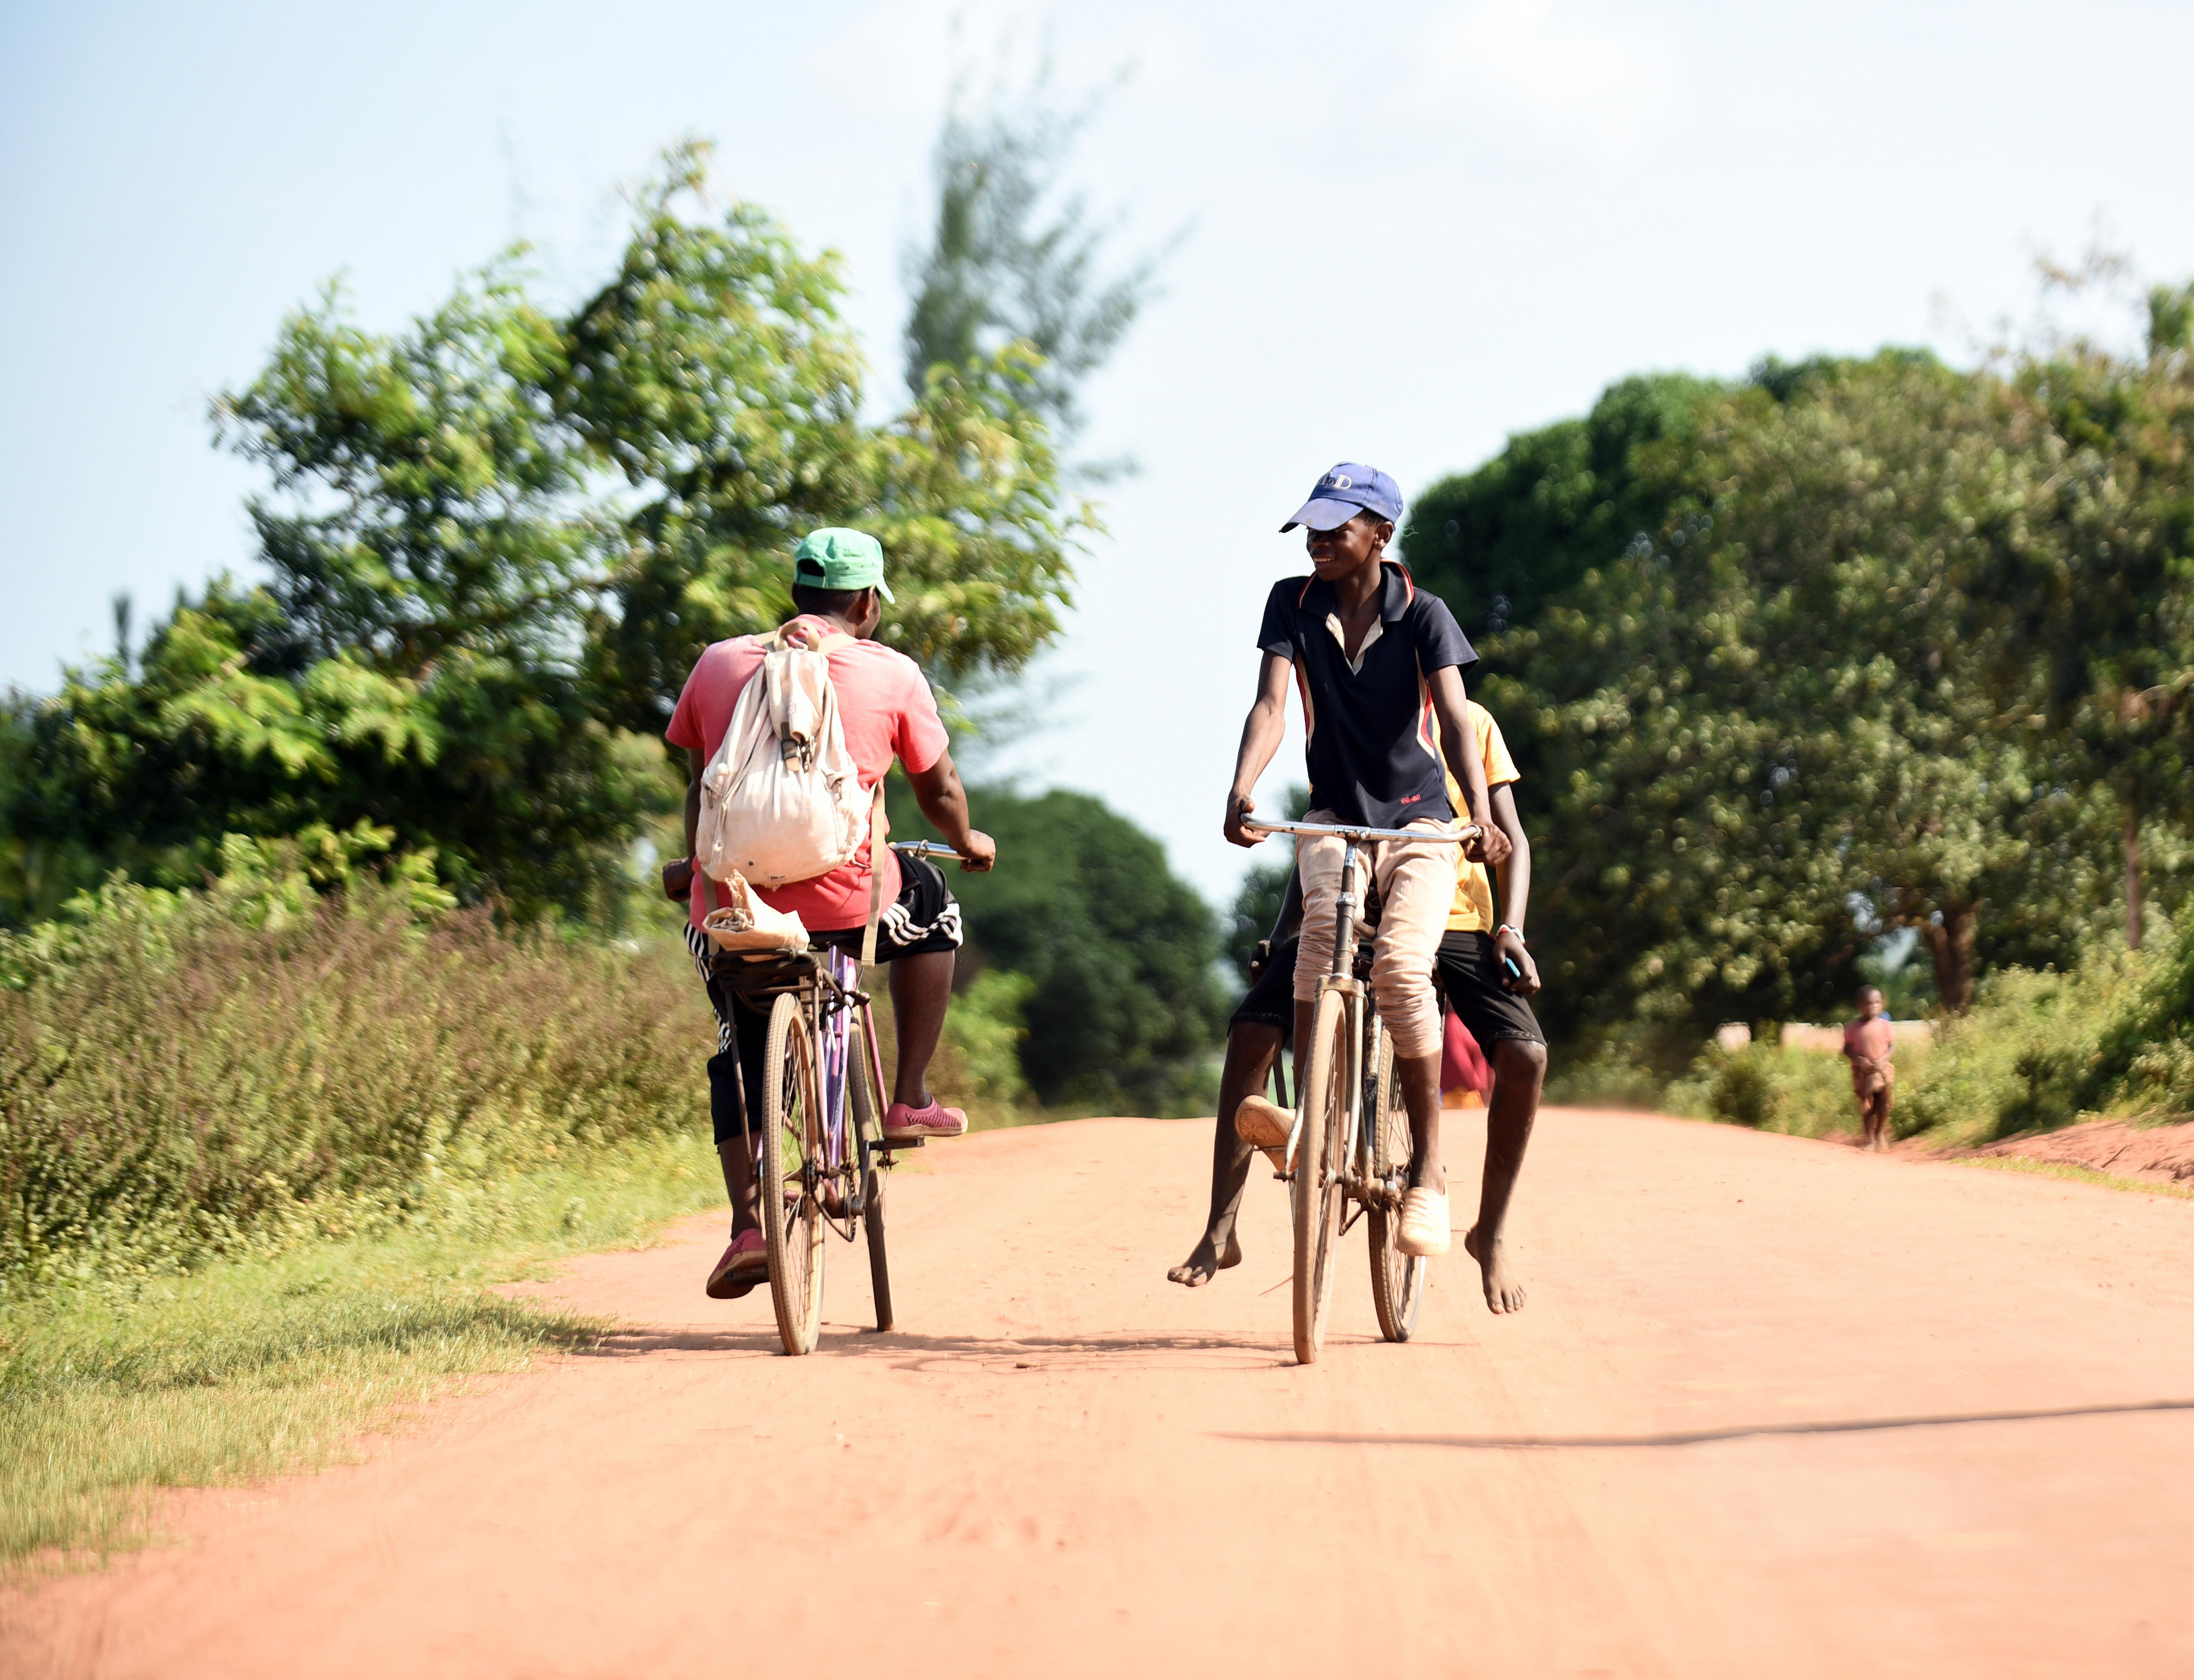 Teenagers on bicycles on a Kenyan country road